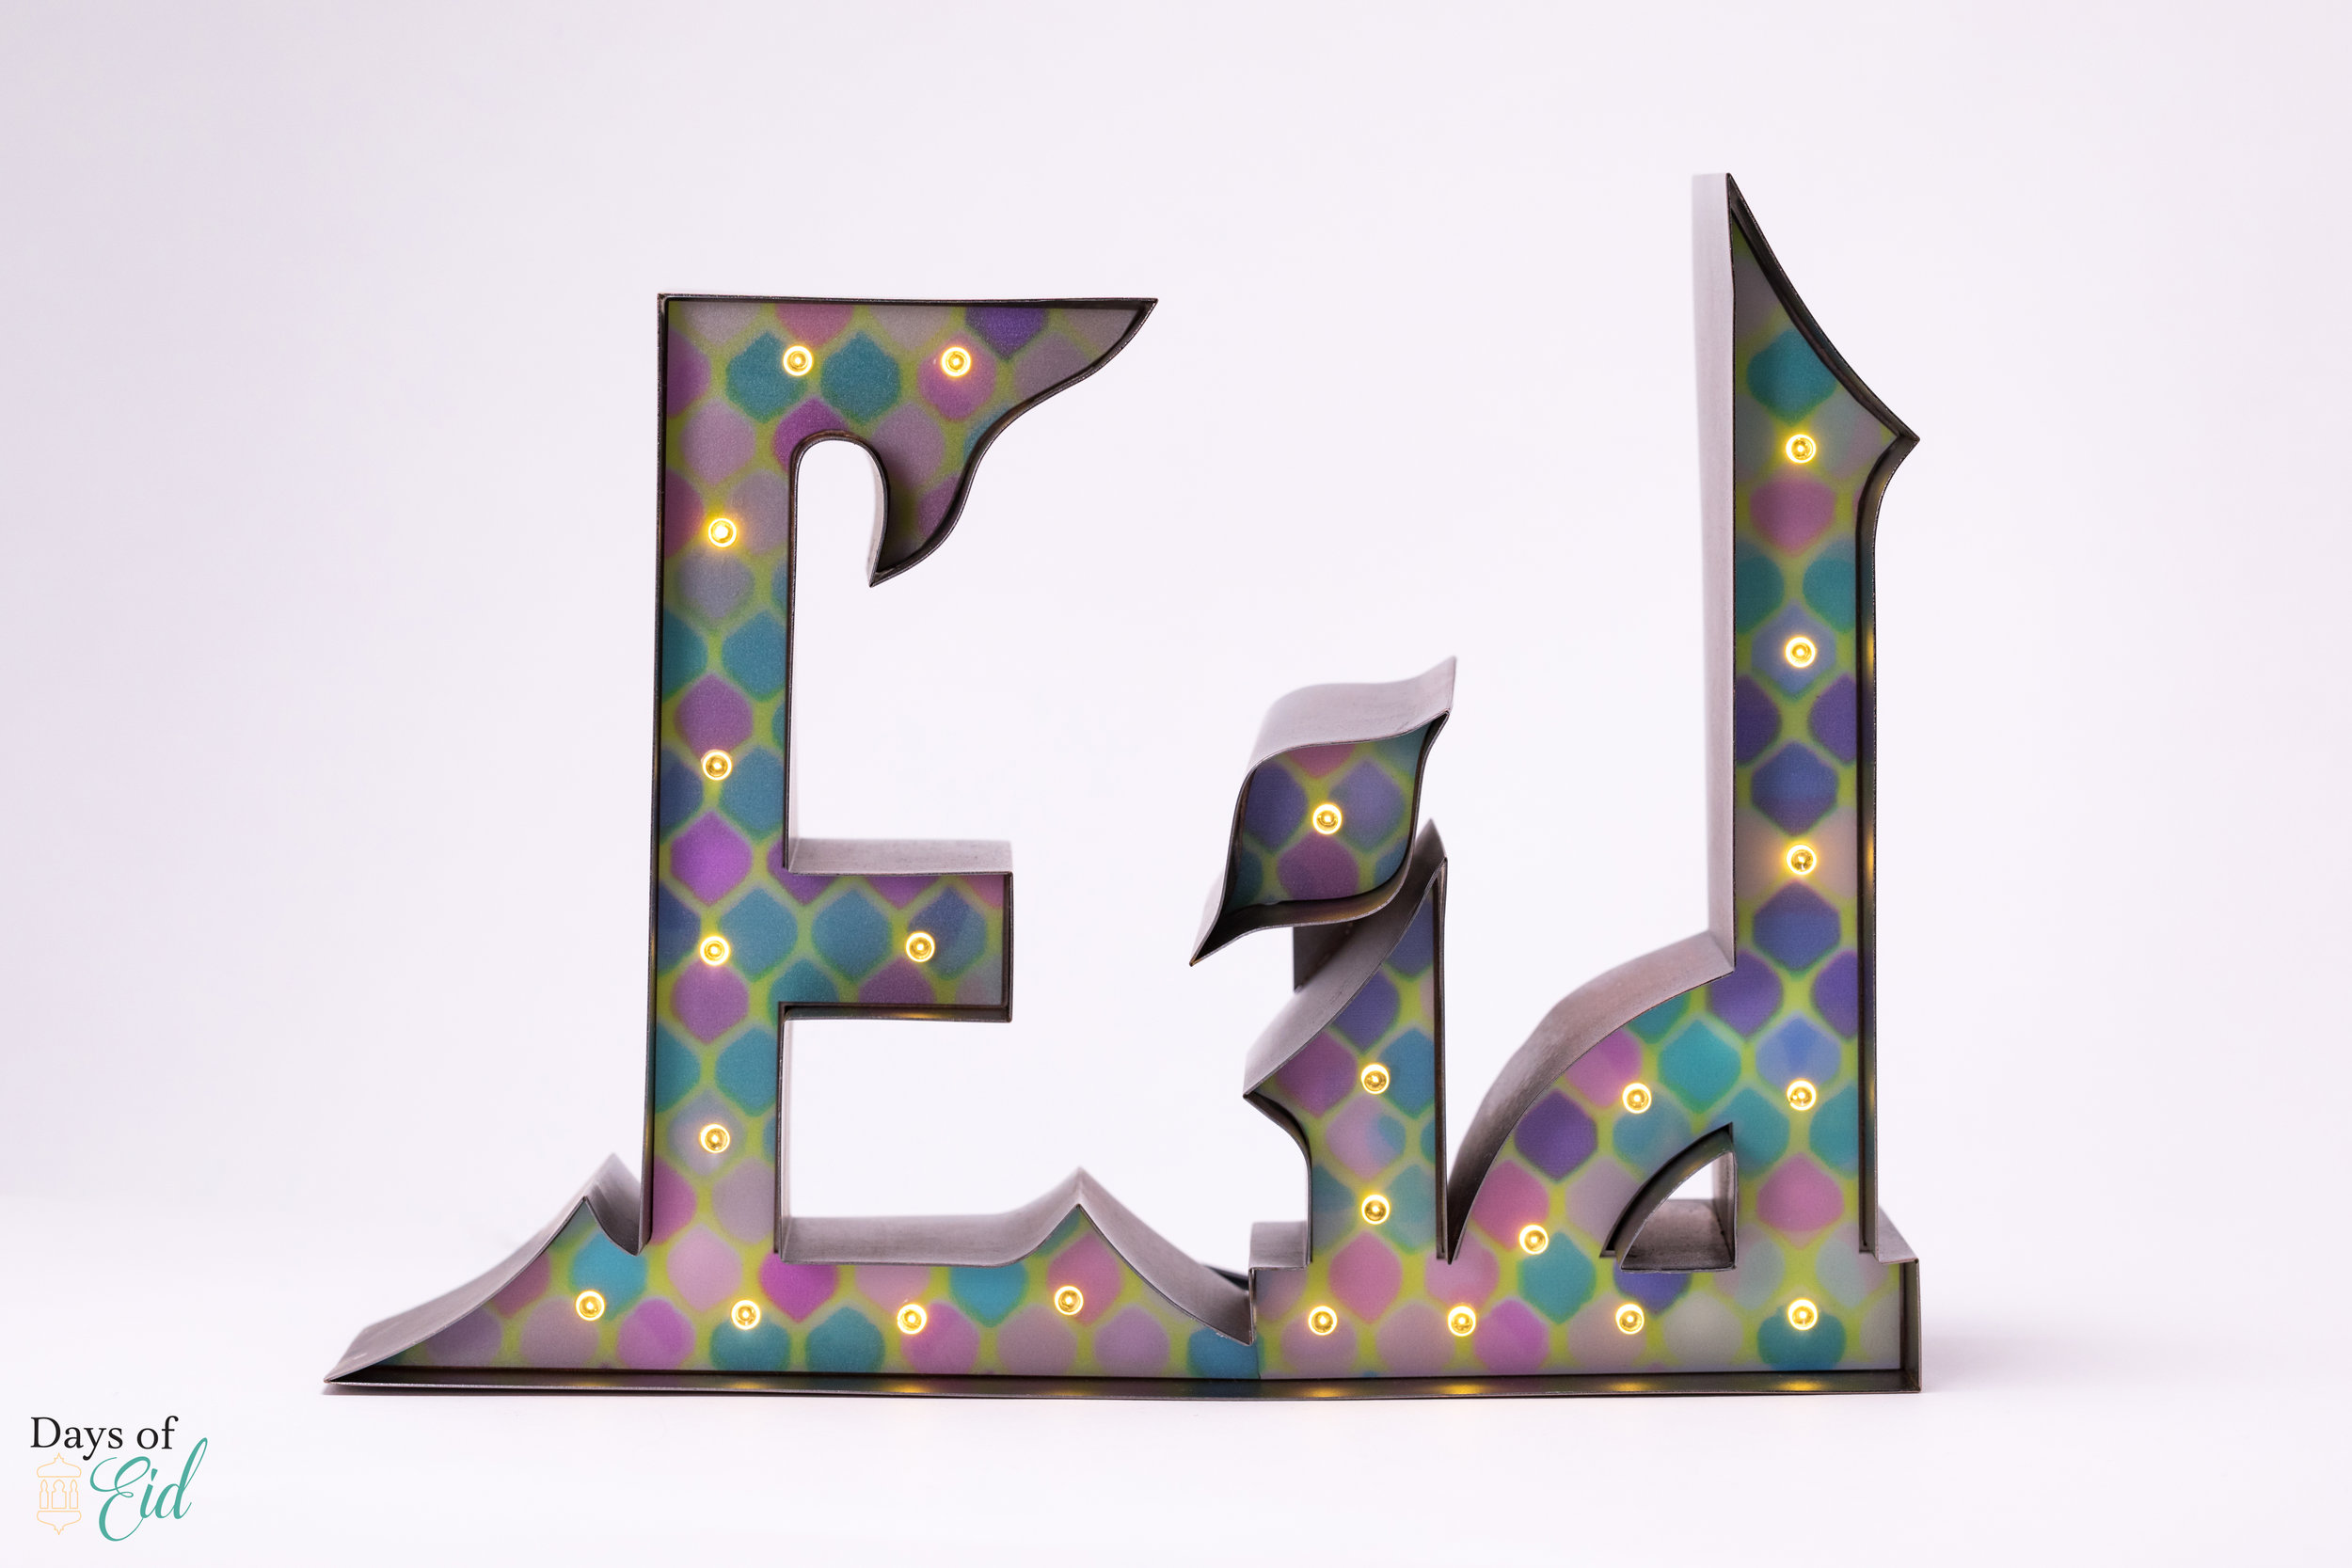 Eid-Home-Decorations-Days-of-Eid-6.jpg